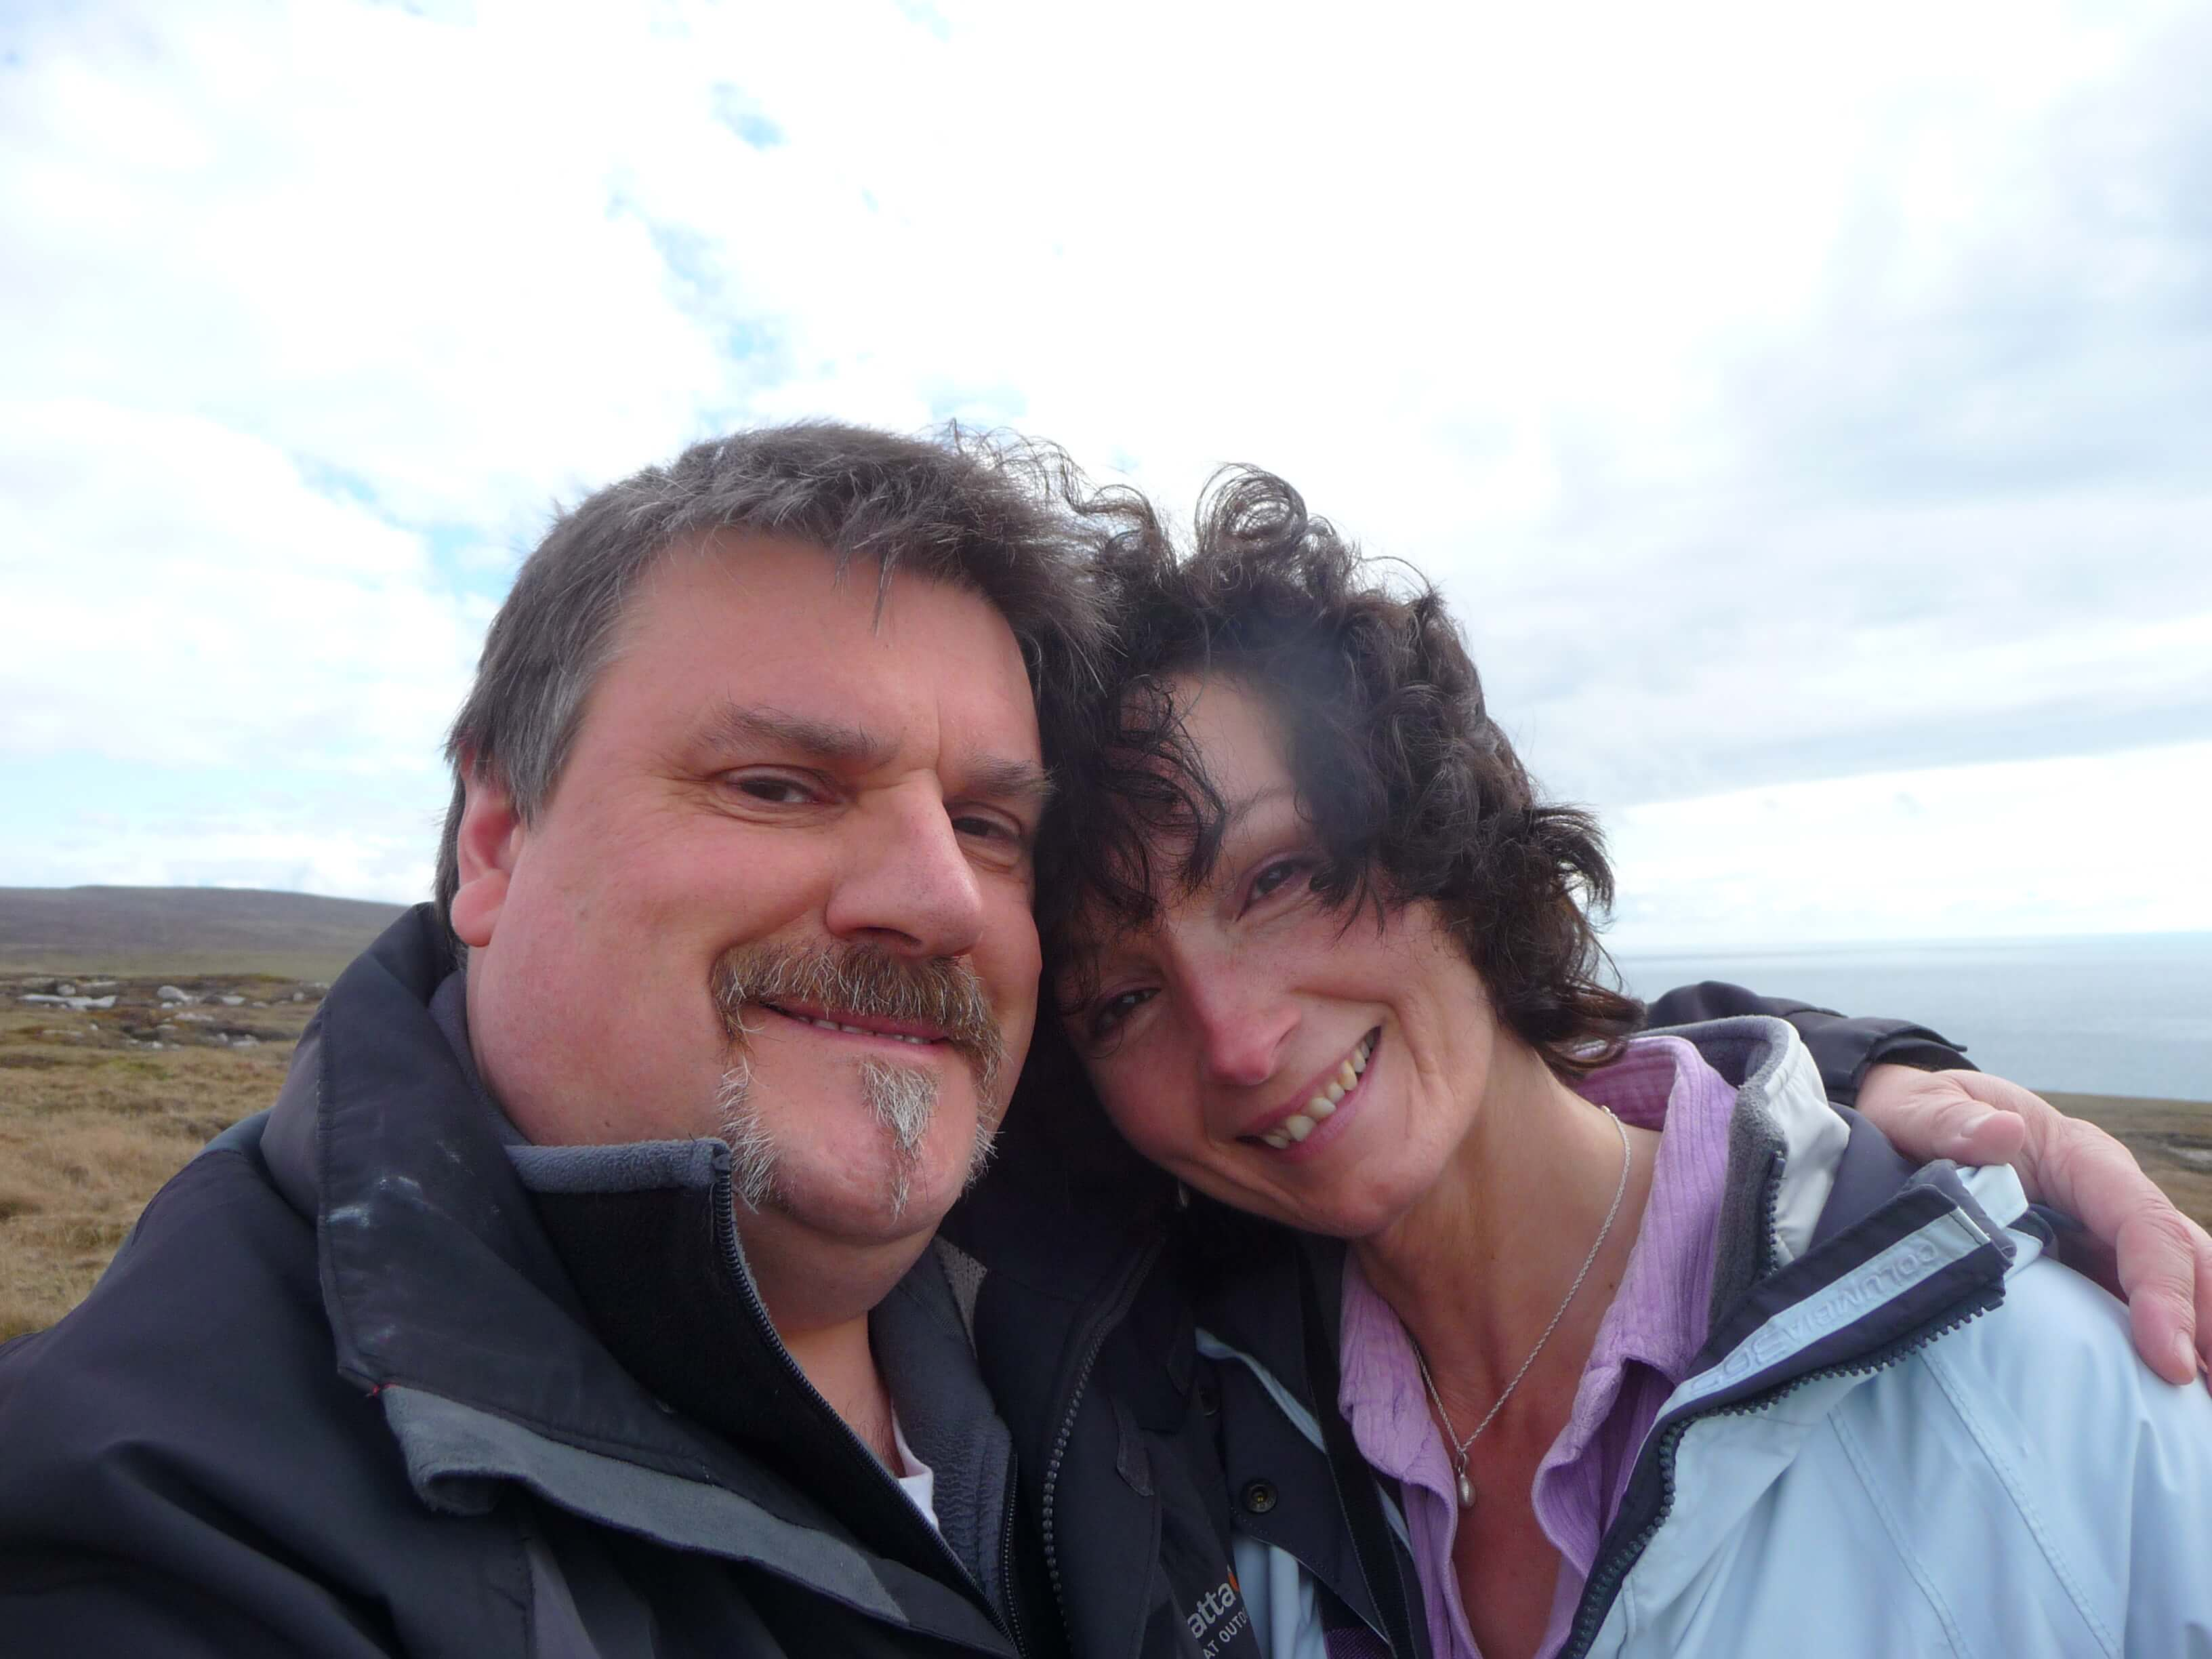 www.Orkneyology.com - Native Orcadian storyteller, folklorist and historian Tom Muir and his American expat wife, Rhonda, in the Orkney Islands, Scotland, UK